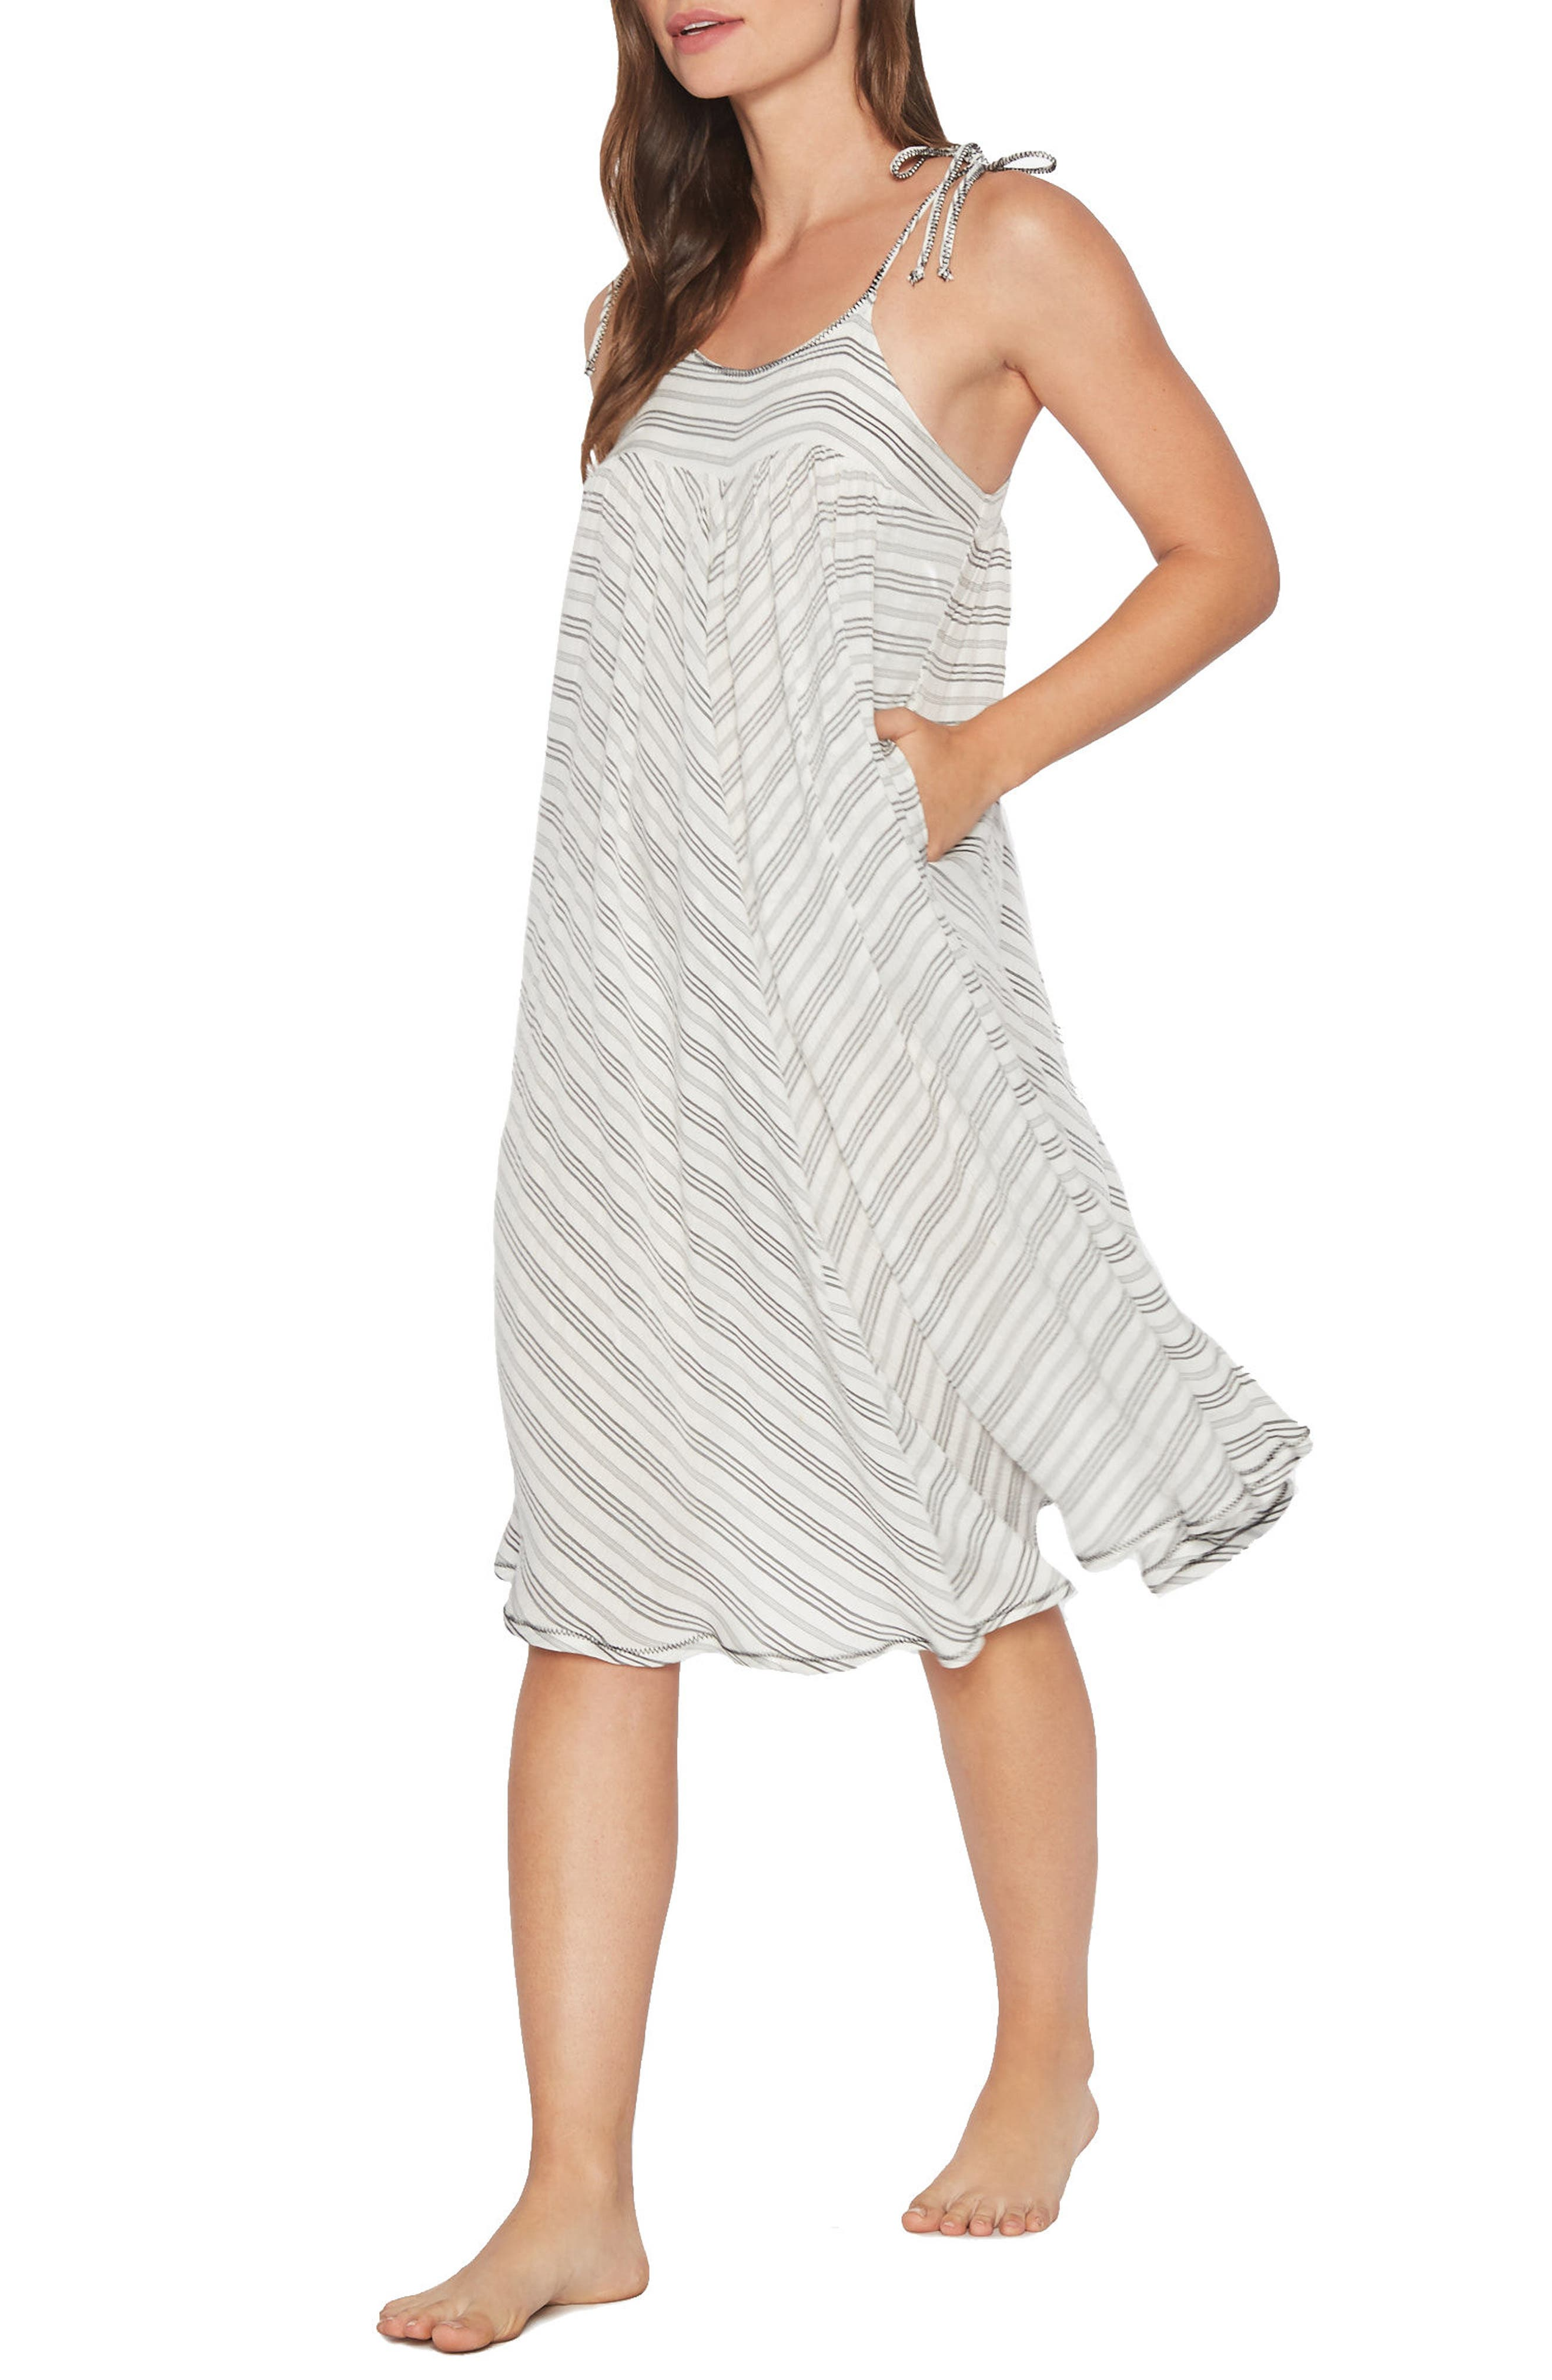 Norah Stripe Cover-Up Dress,                             Main thumbnail 1, color,                             Grey/ White